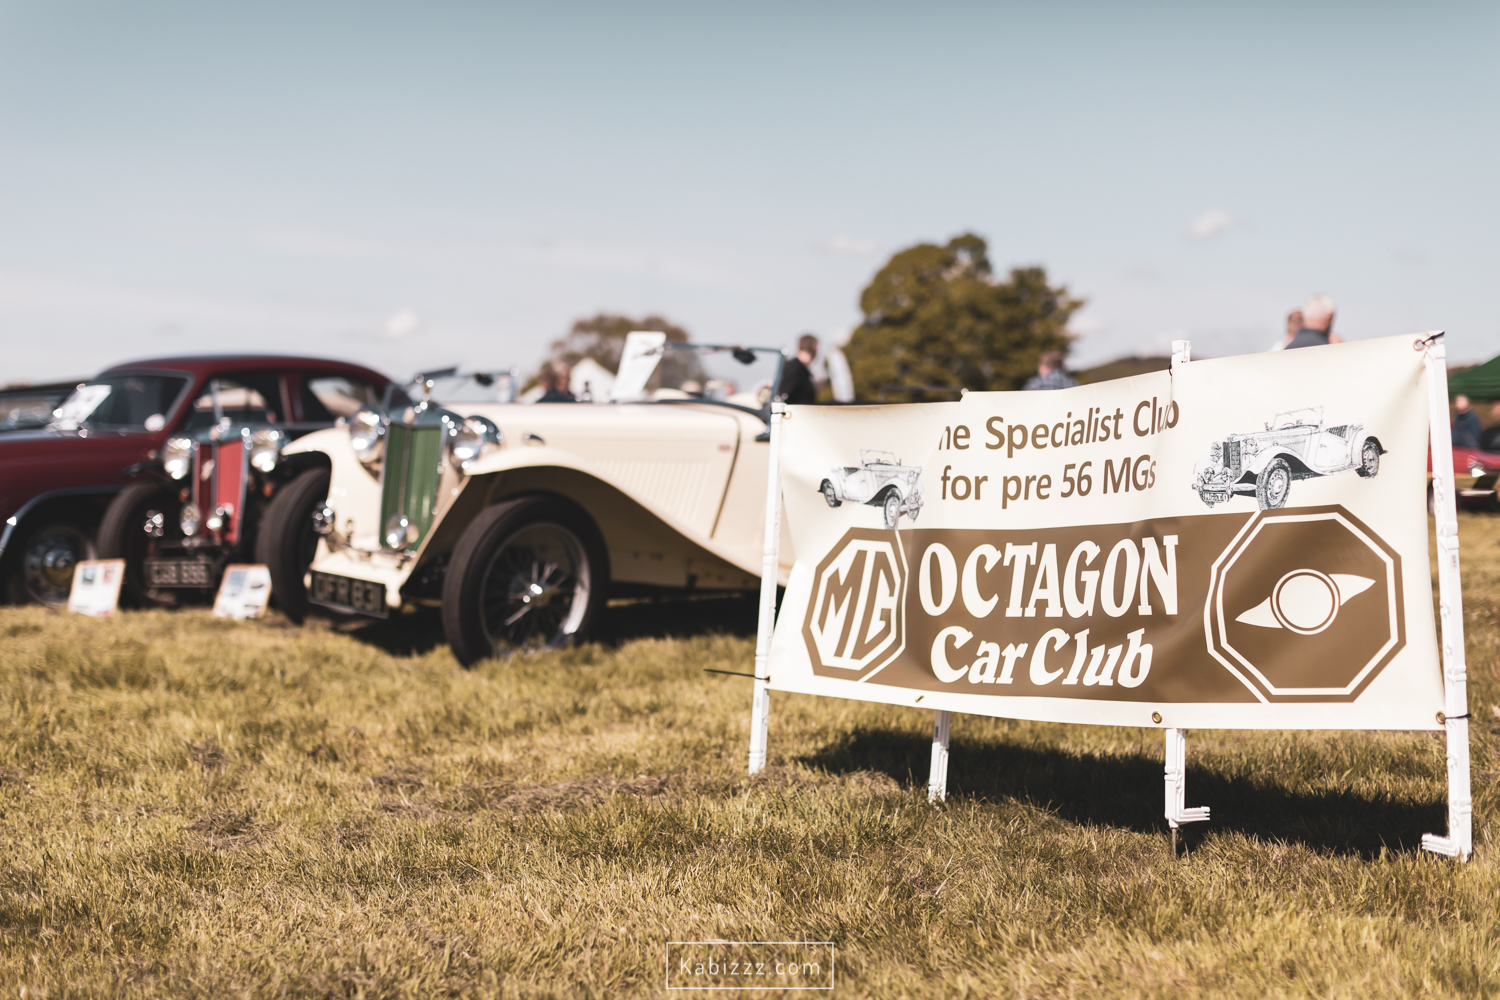 Kabizzz_Photography_Stirling_District_Classic _cars-57.jpg